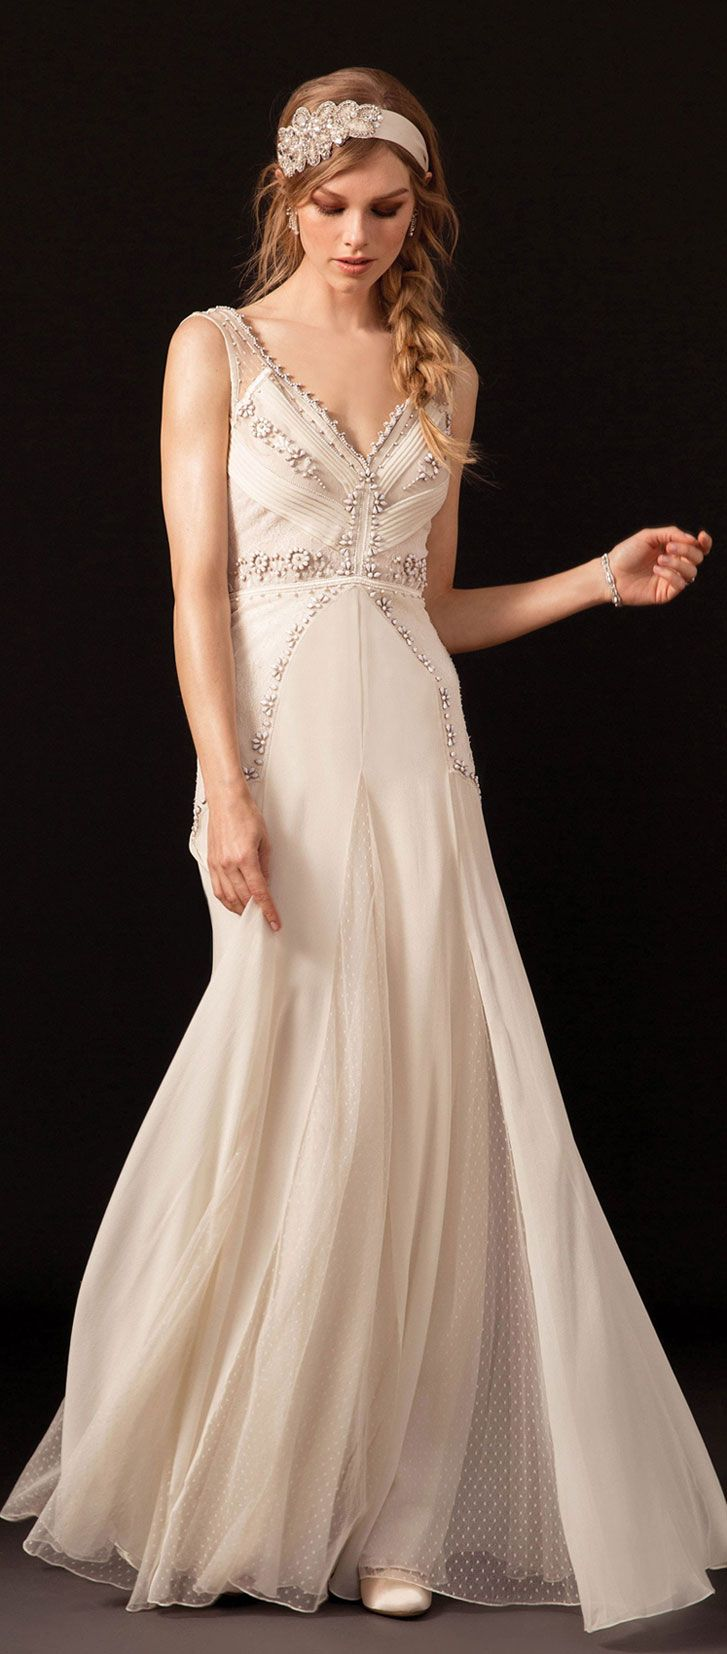 Sleeveless v neckline embellished with tonal pearls fit and flare wedding gown #wedding #weddingdress #weddinggown